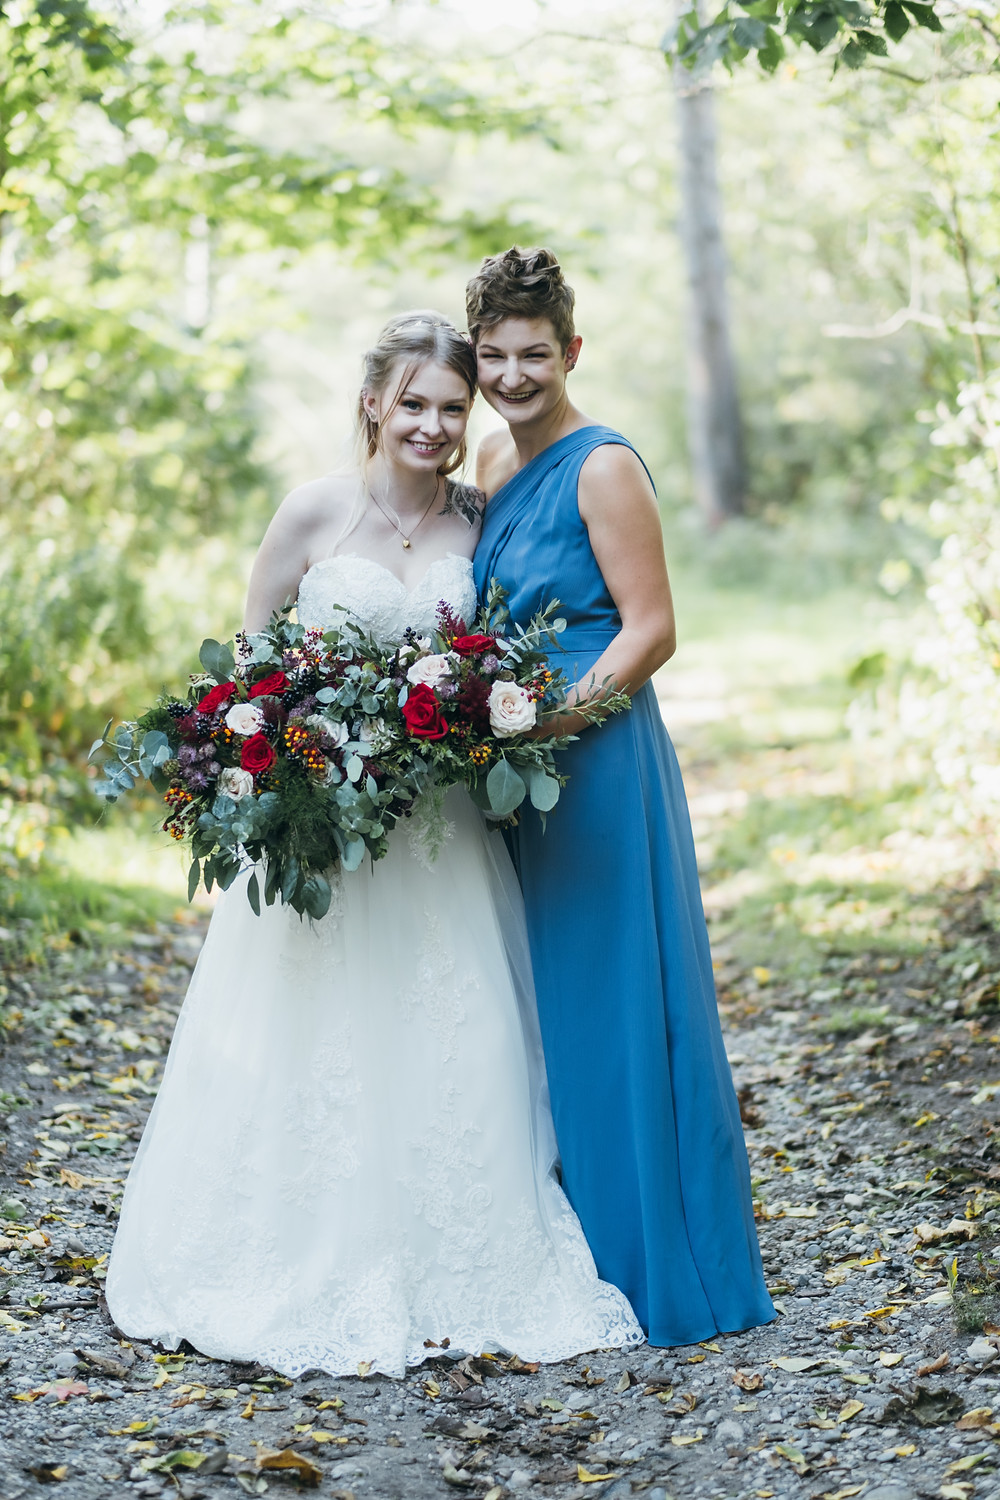 Whimsical summer wedding at the Caso Station in St Thomas, Ontario. Photo by Chance Faulkner Photography.